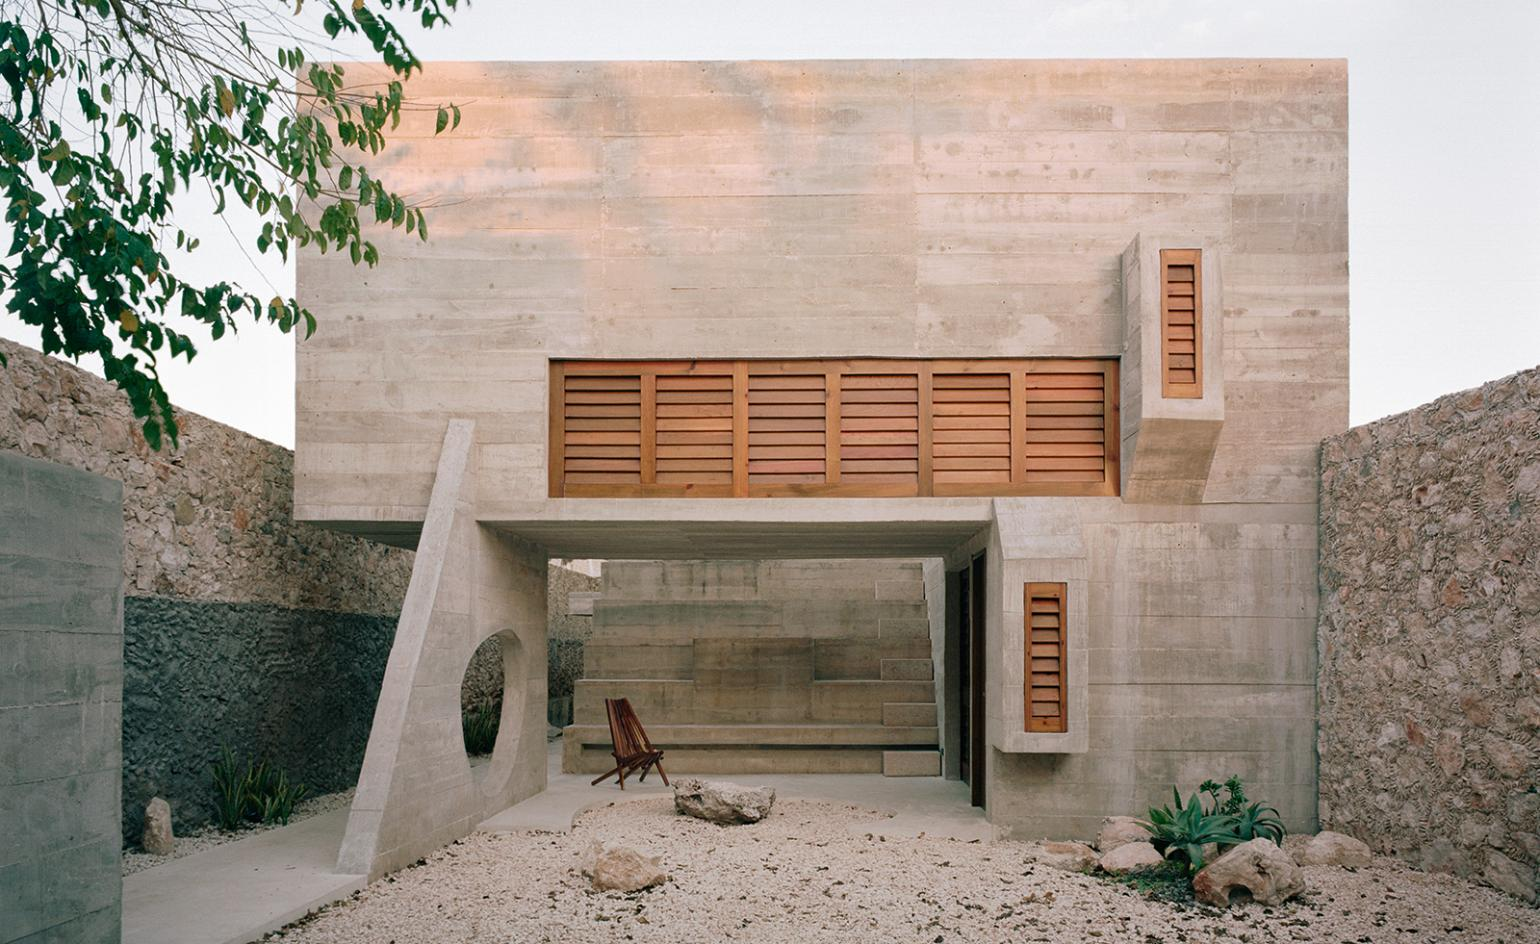 Ludwig Godefroy's brutalist Casa Mérida in Mexico